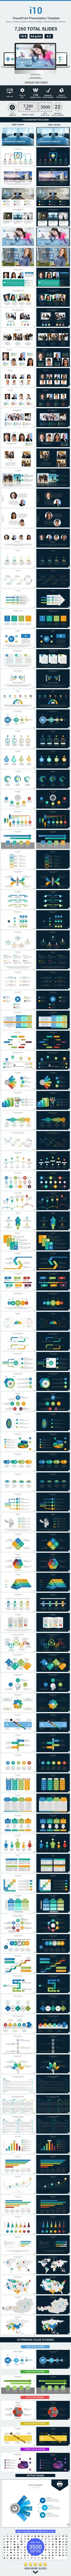 i10 PowerPoint Presentation Template #design Download: http://graphicriver.net/item/-i10-powerpoint-presentation-template/12289835?ref=ksioks